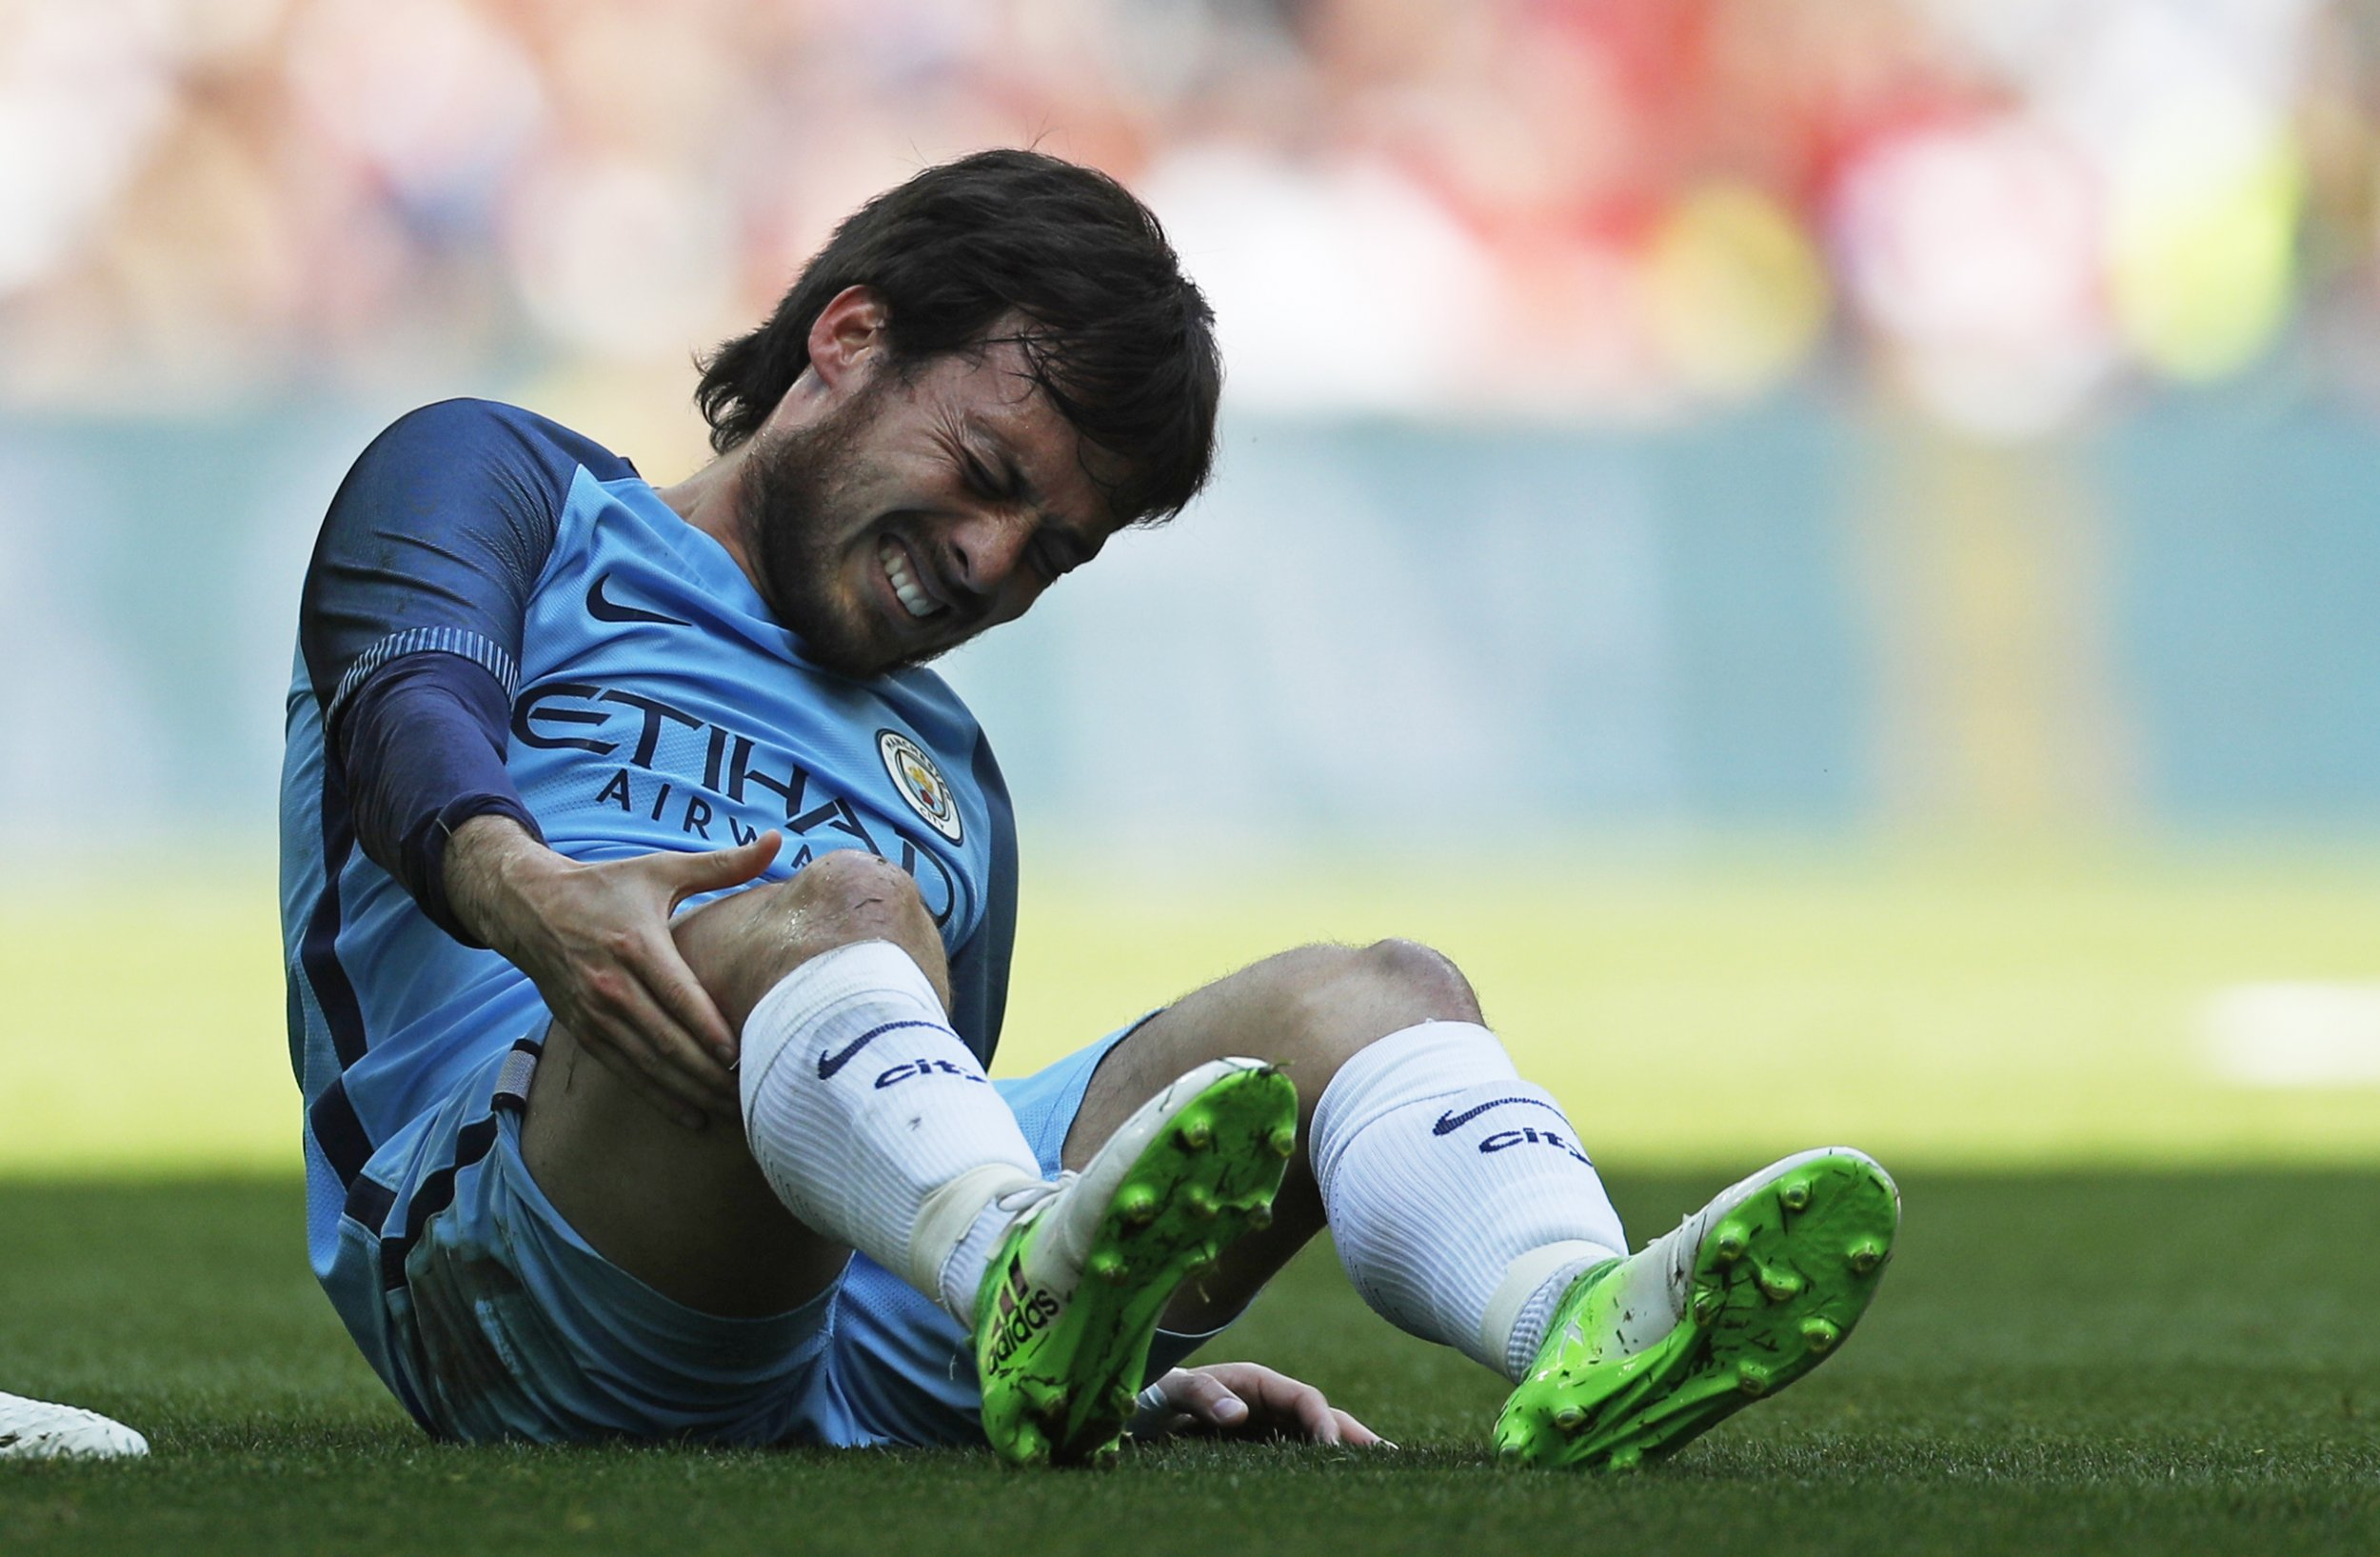 Manchester City's David Silva at Wembley Stadium, north London, April 23.